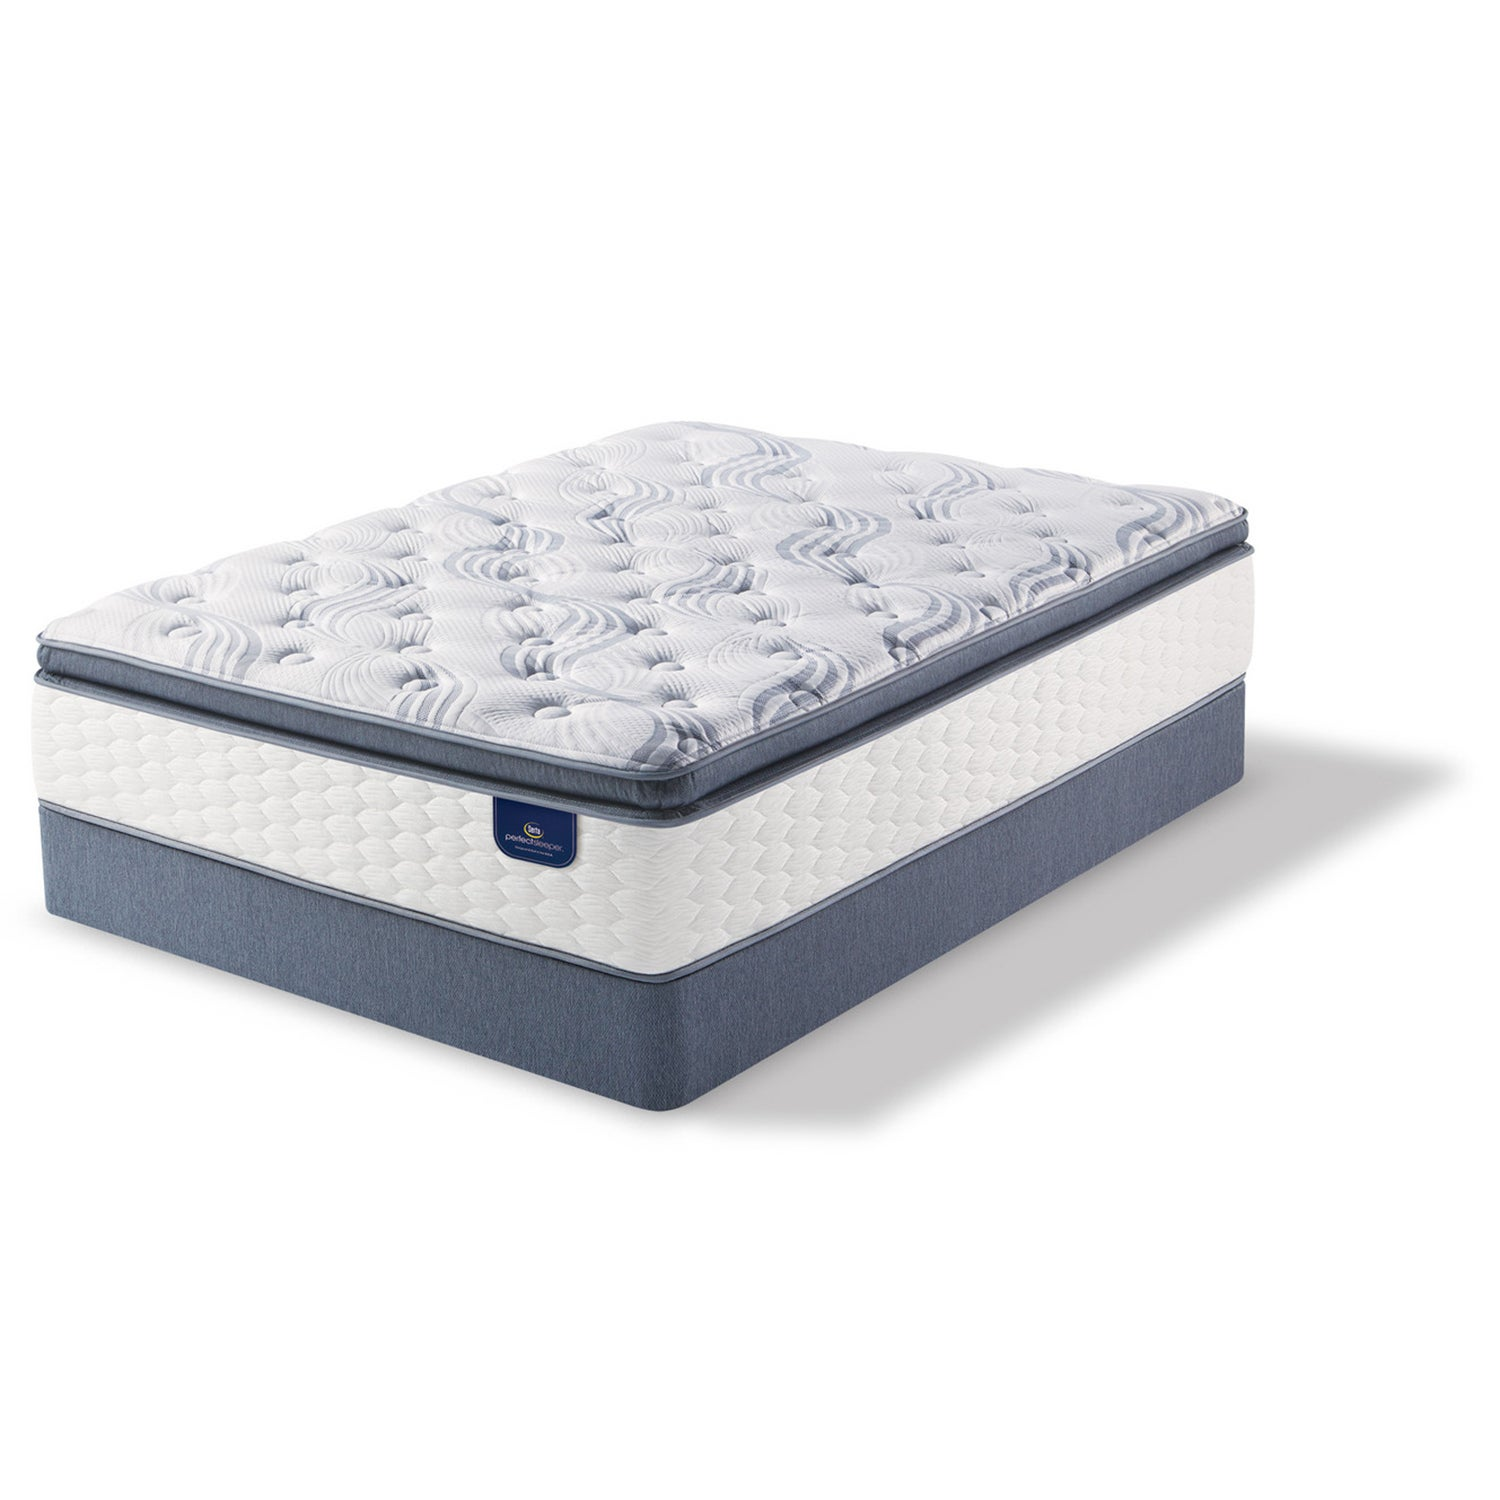 mattress pillow top wayfair reviews beautyrest recharge simmons medium pdx topper mattresses